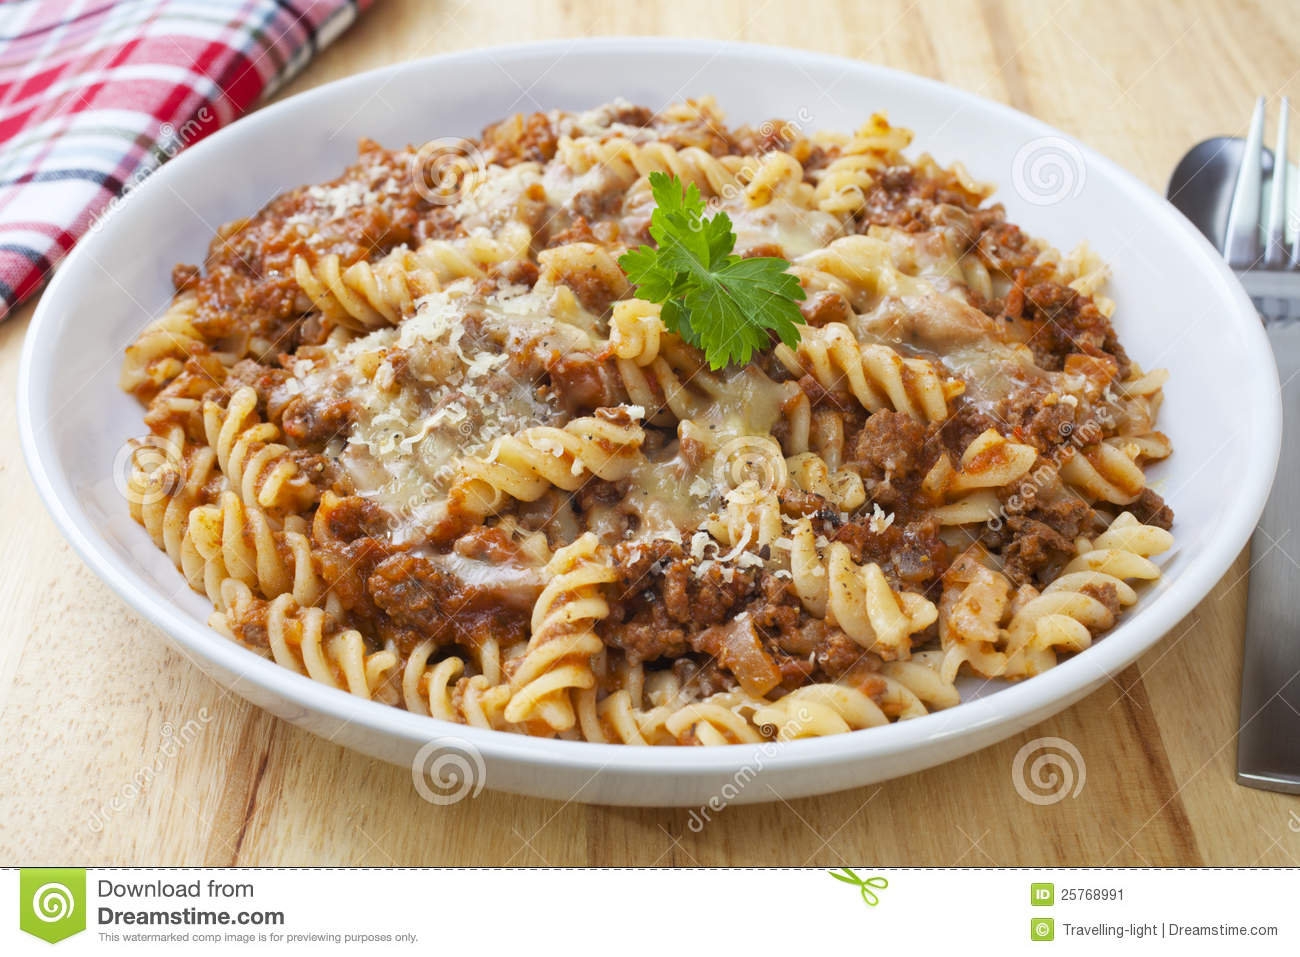 Fusili pasta baked with bolognese sauce, mozzarella and parmesan.